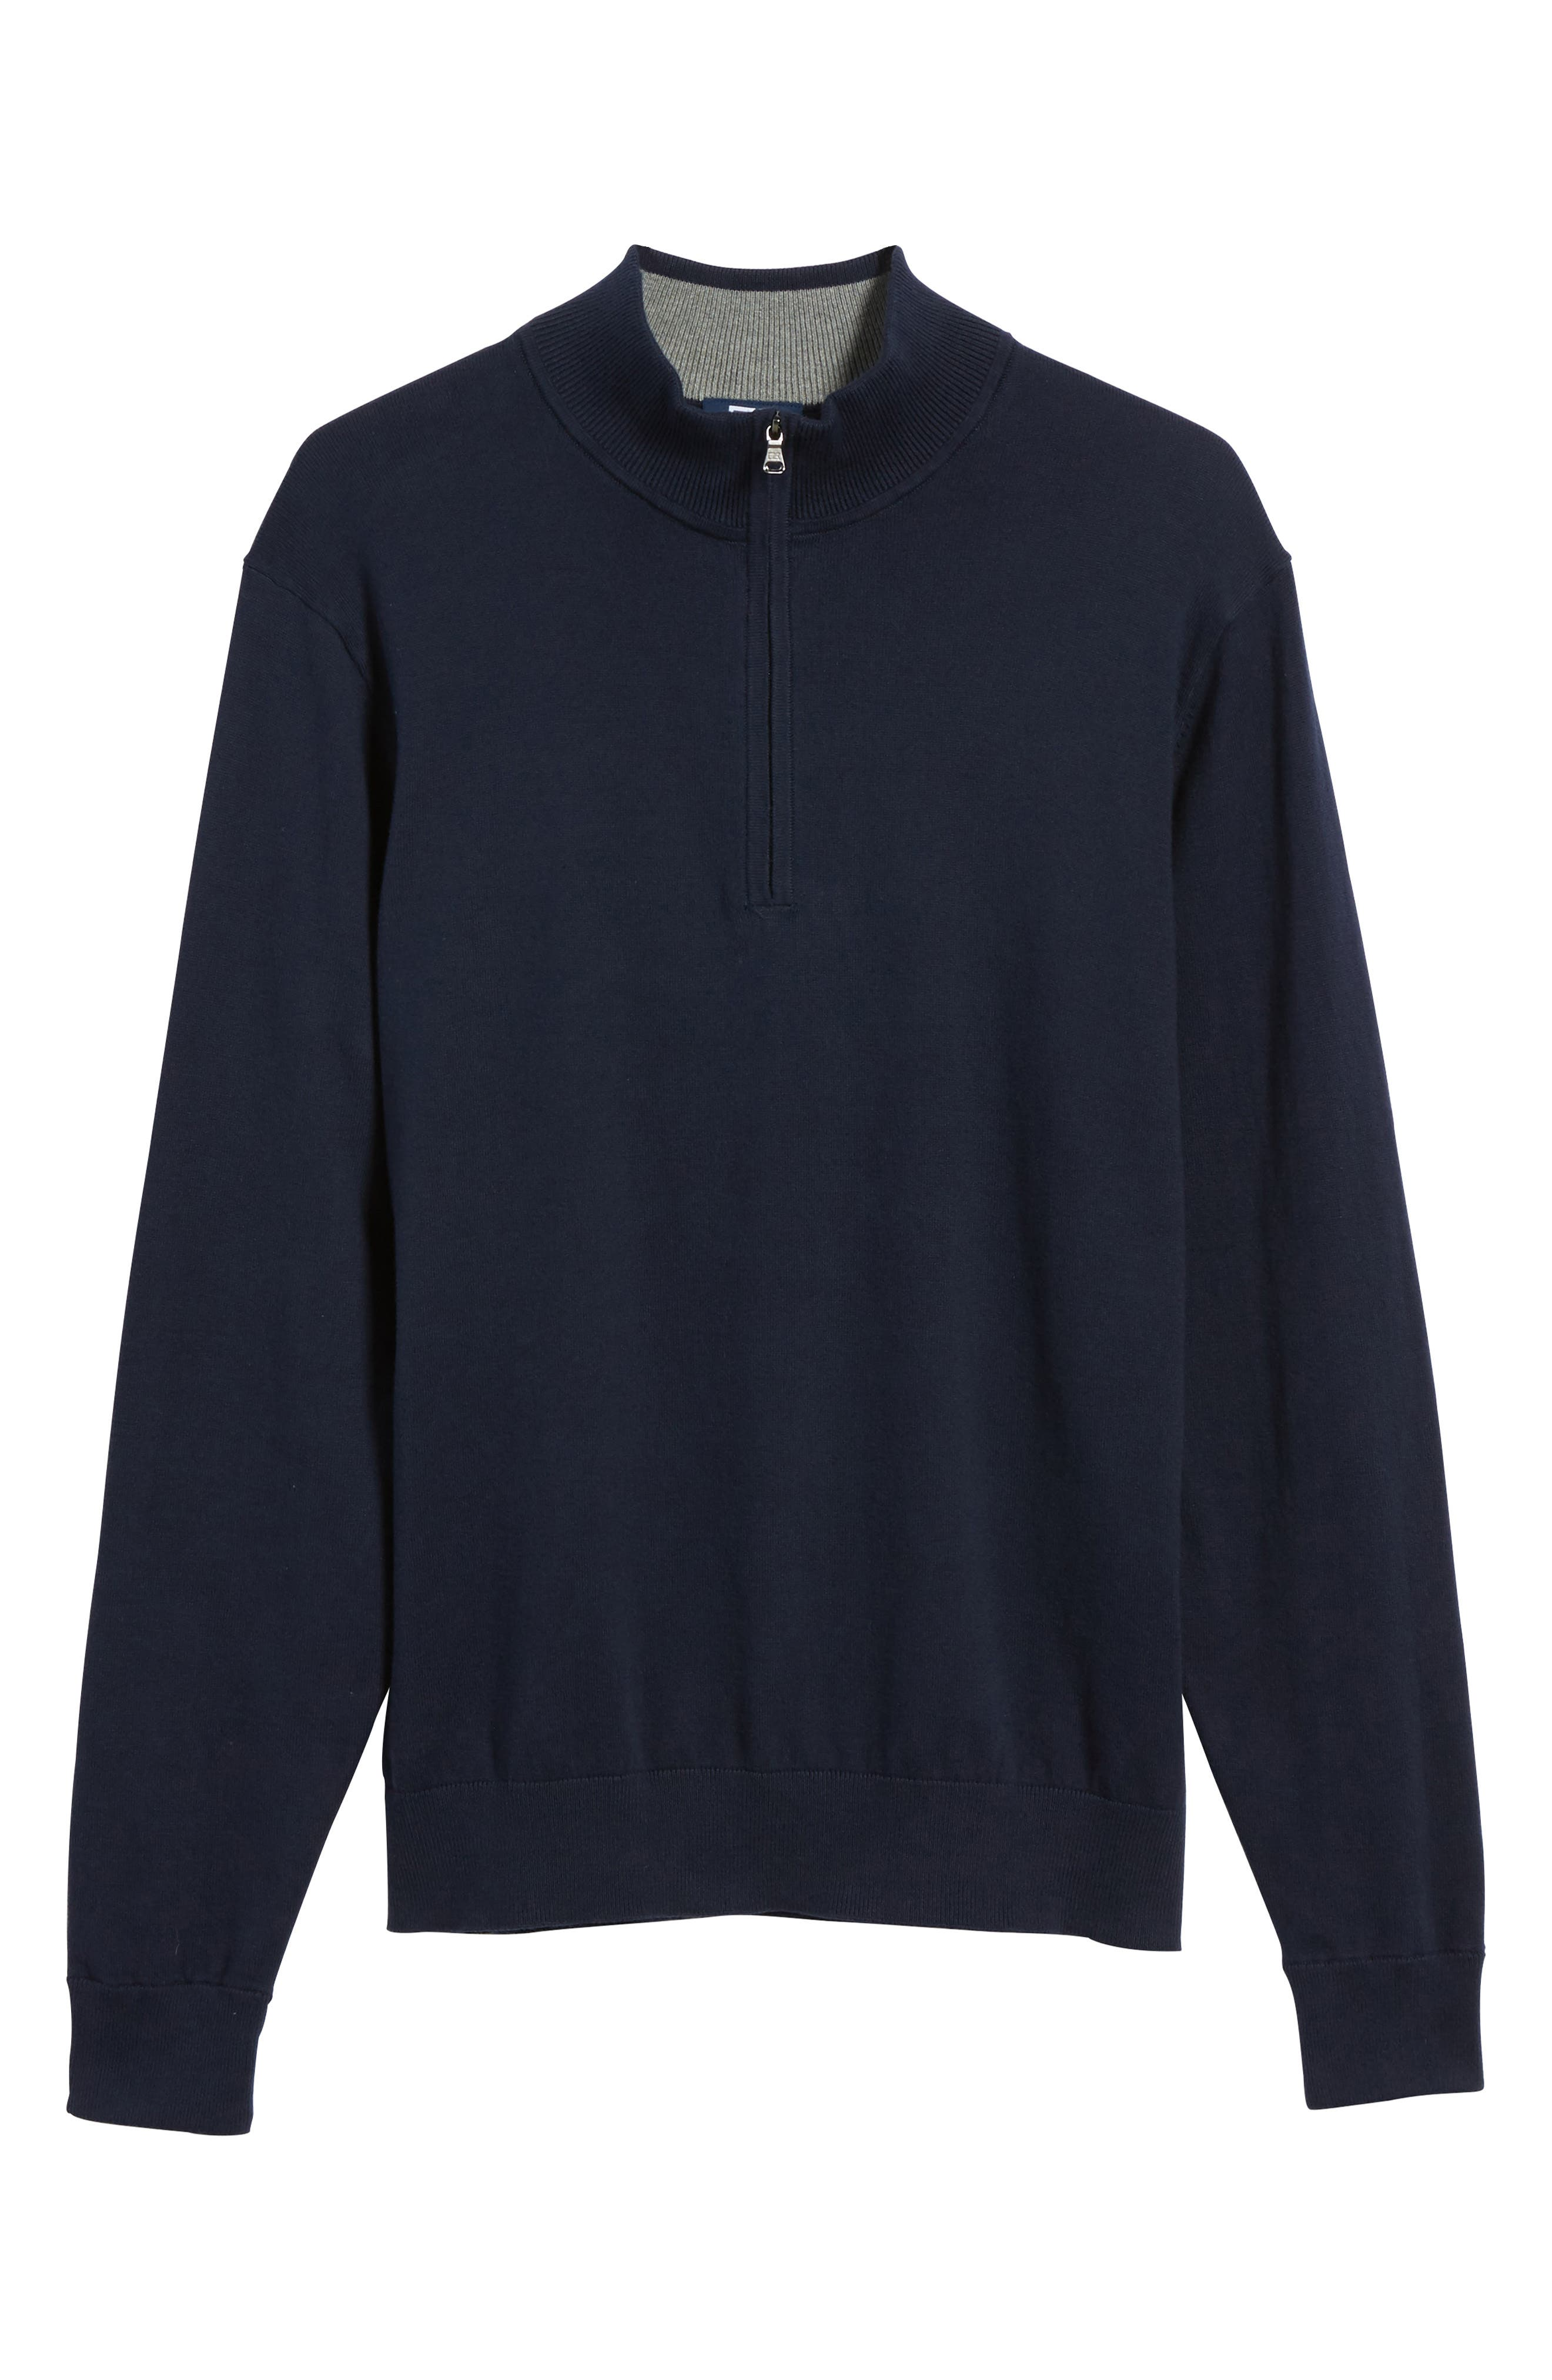 Lakemont Half Zip Sweater,                             Alternate thumbnail 6, color,                             Liberty Navy